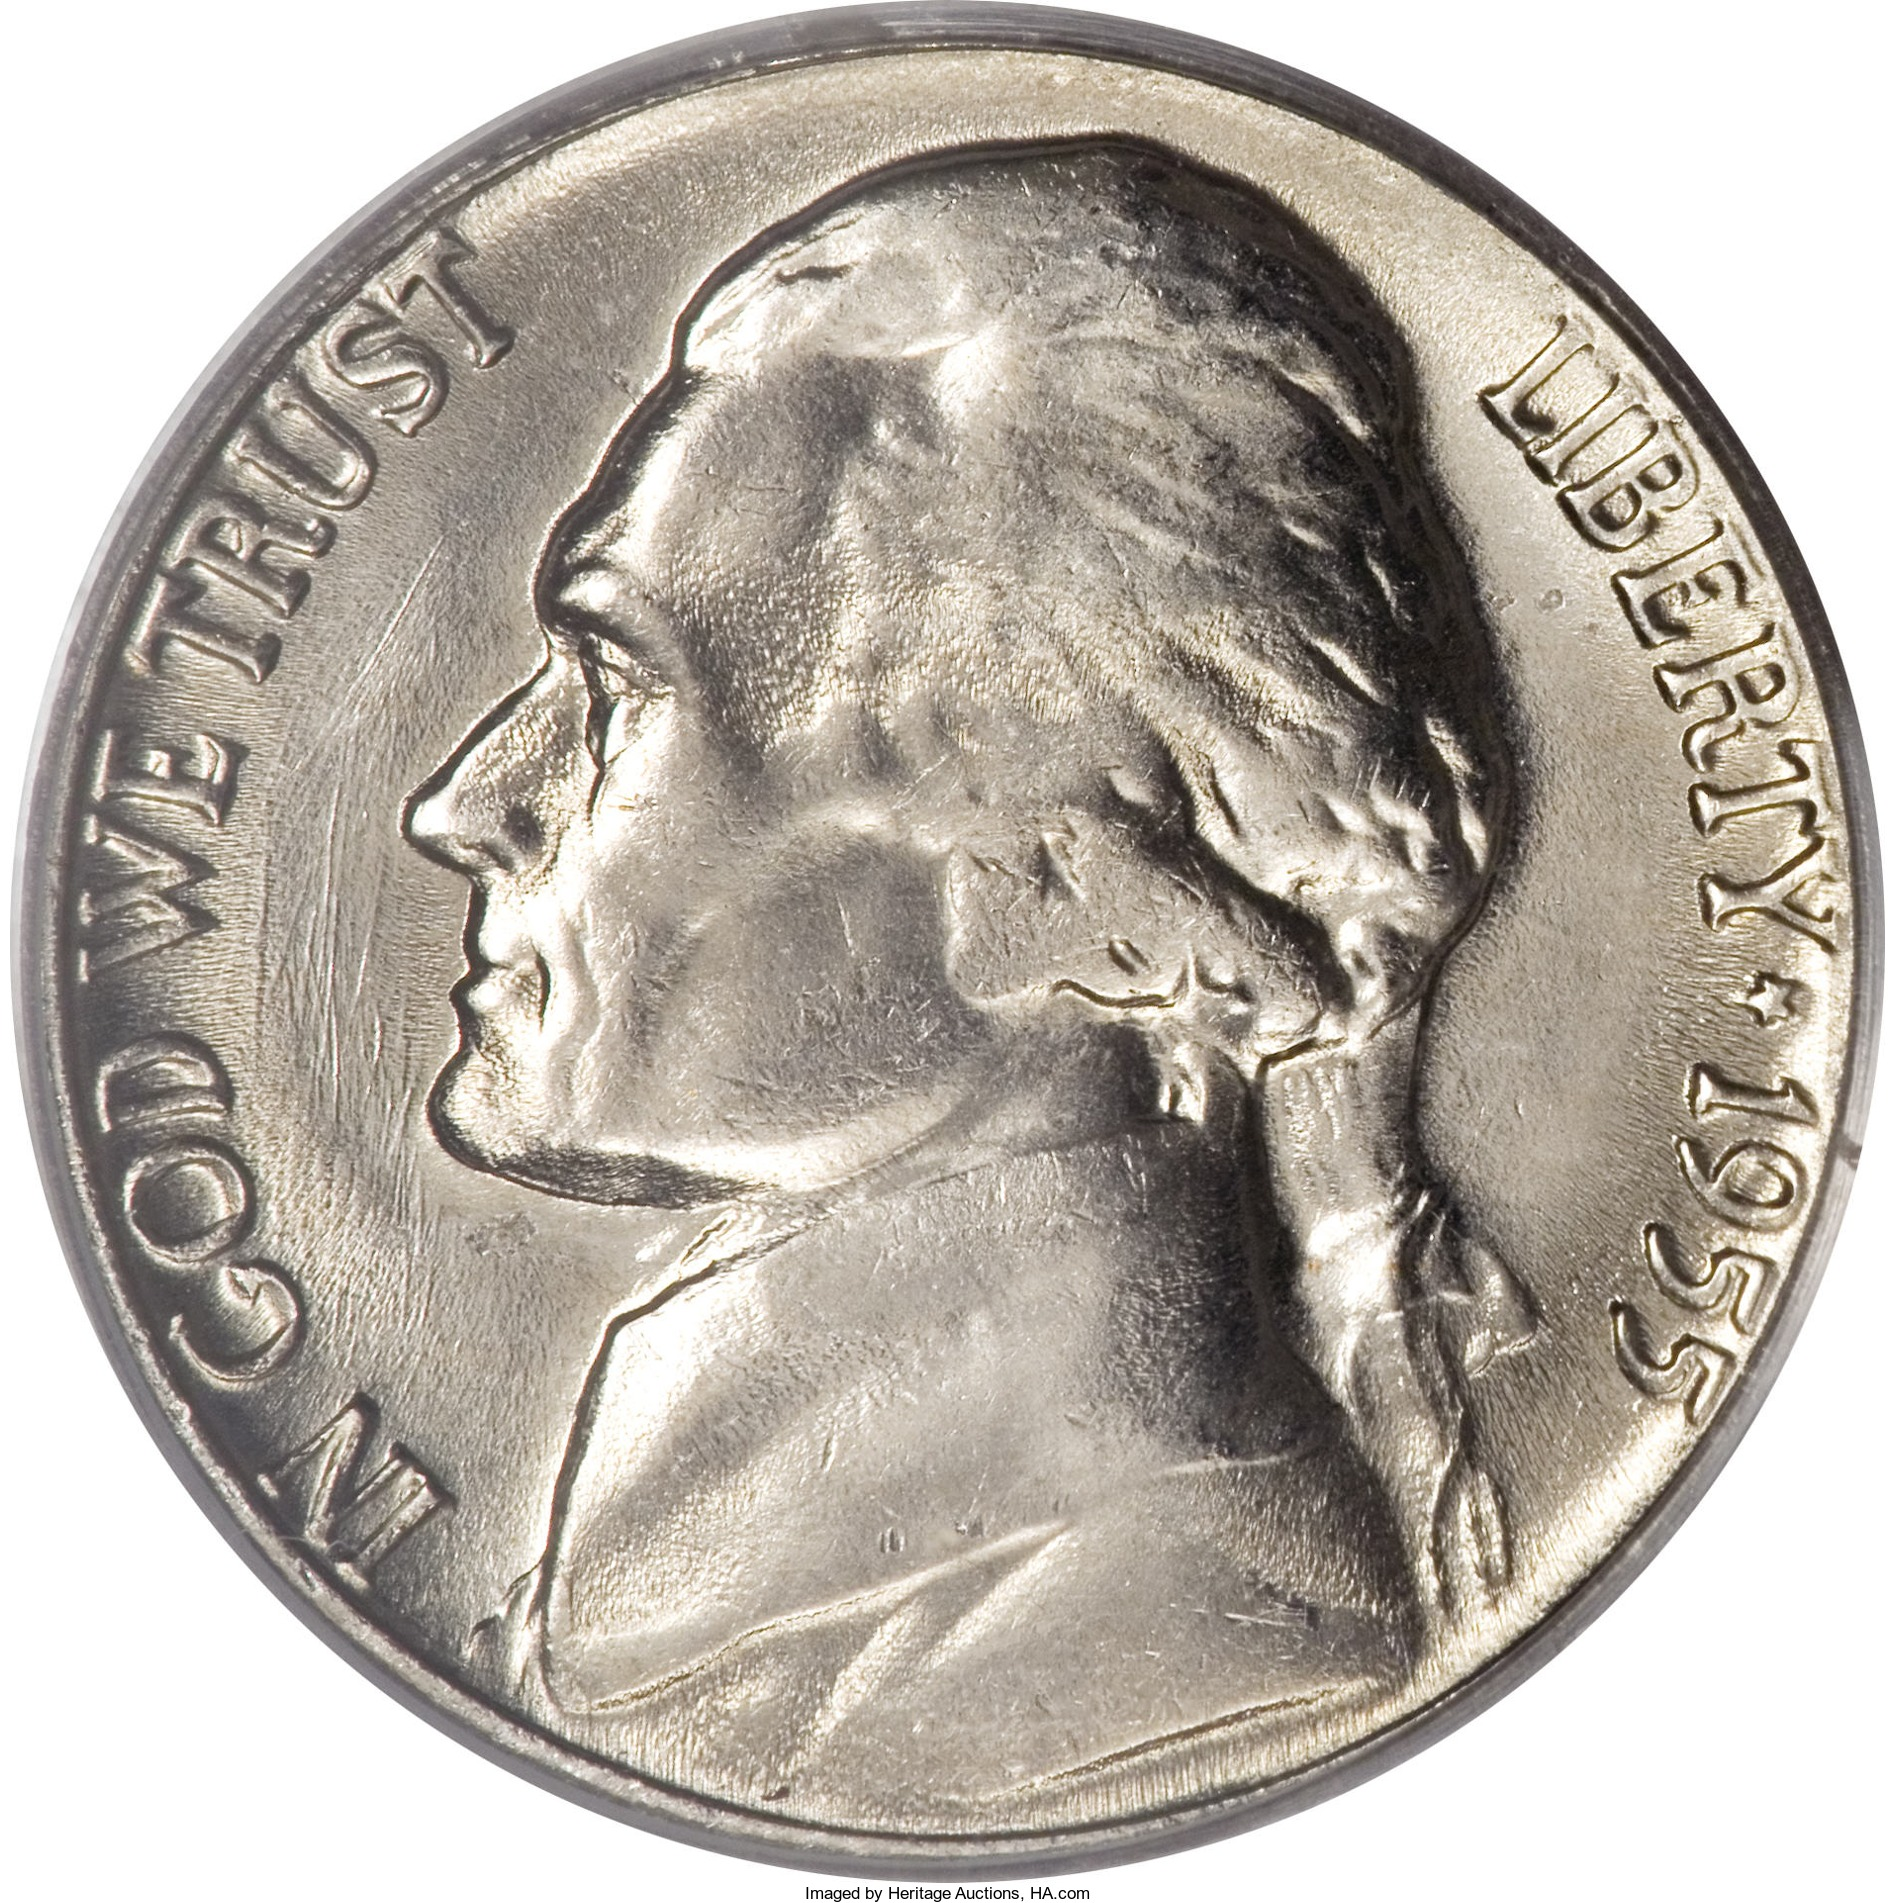 1955-D Jefferson Nickel Value - CoinHELP